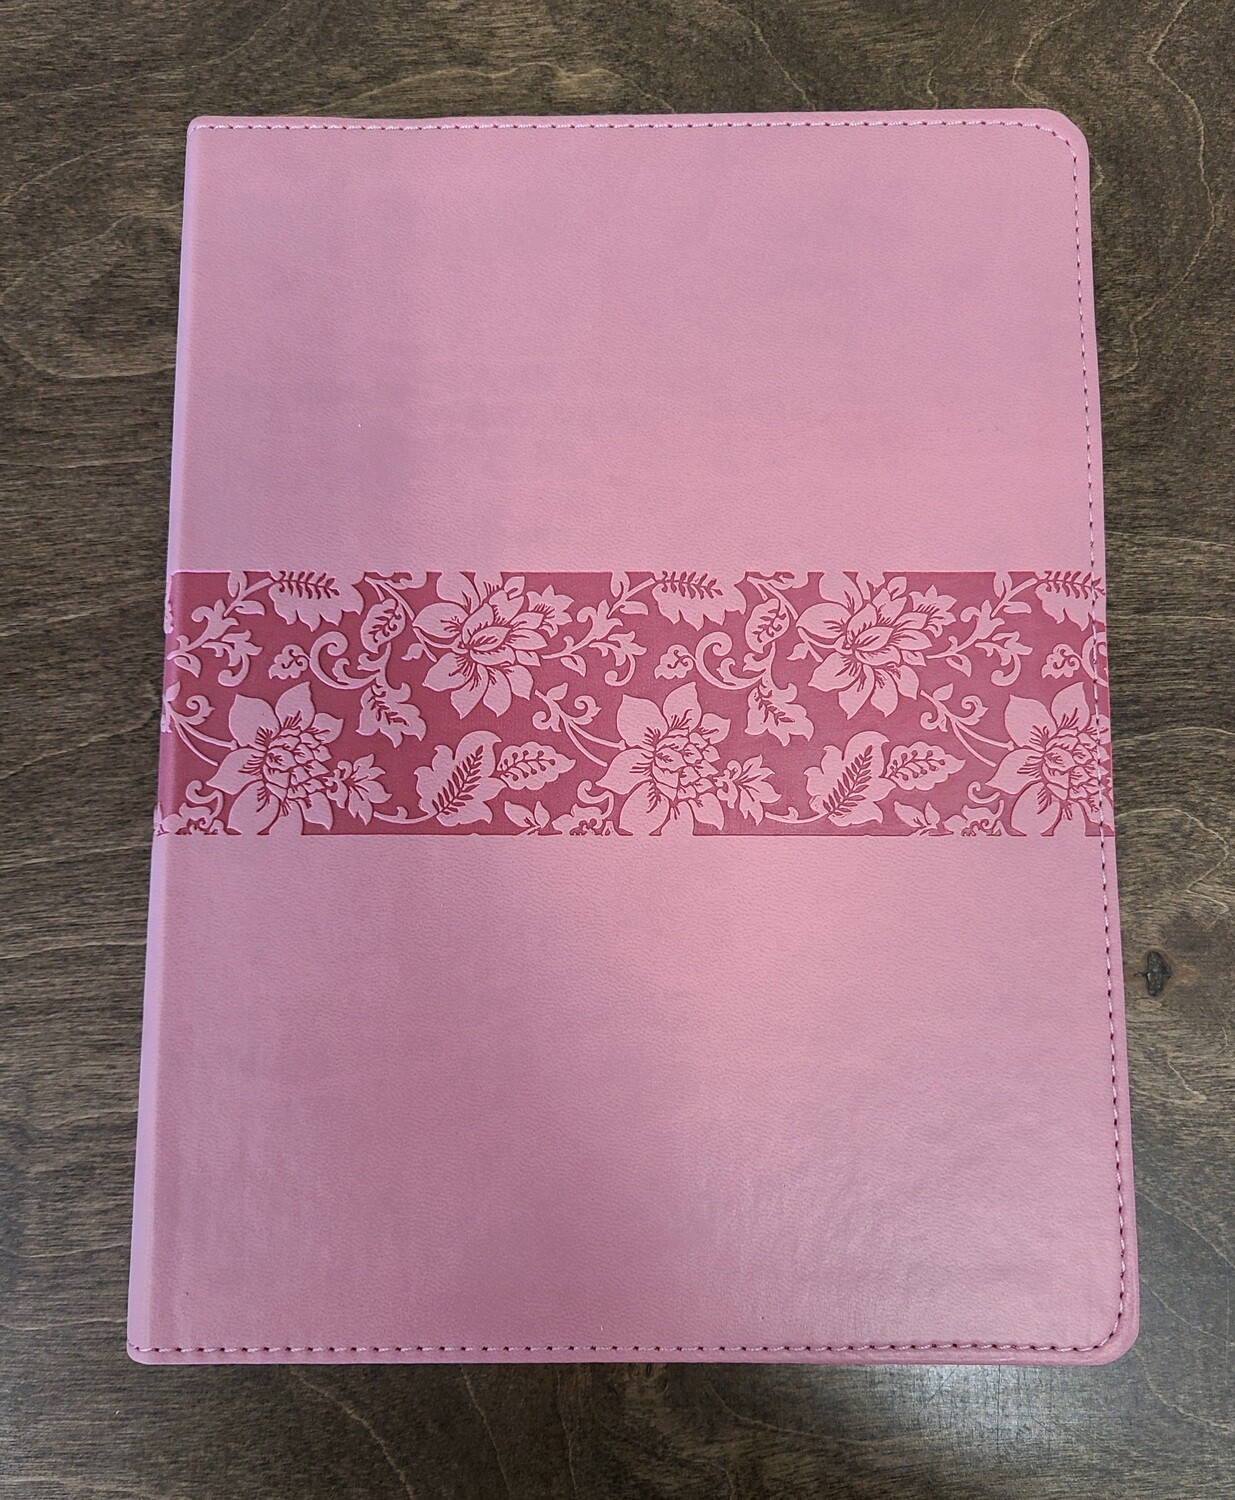 HCSB The Mission of God Study Bible - Cameo Rose LeatherTouch